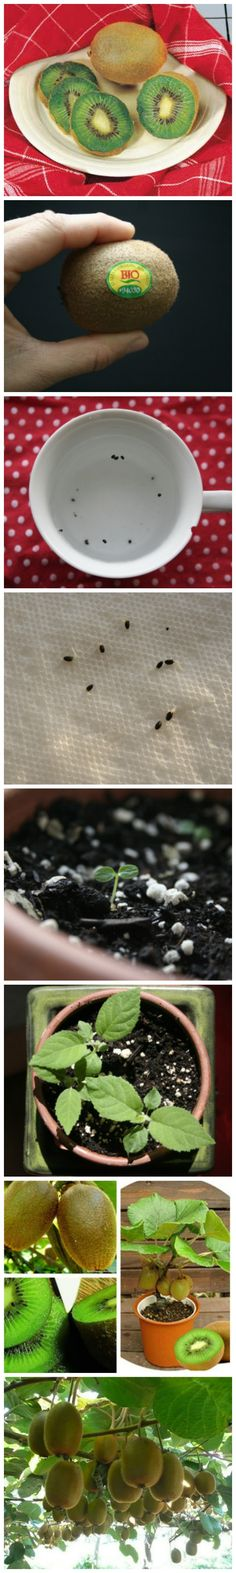 How To Grow A Kiwi #Plant From Seed – DIY